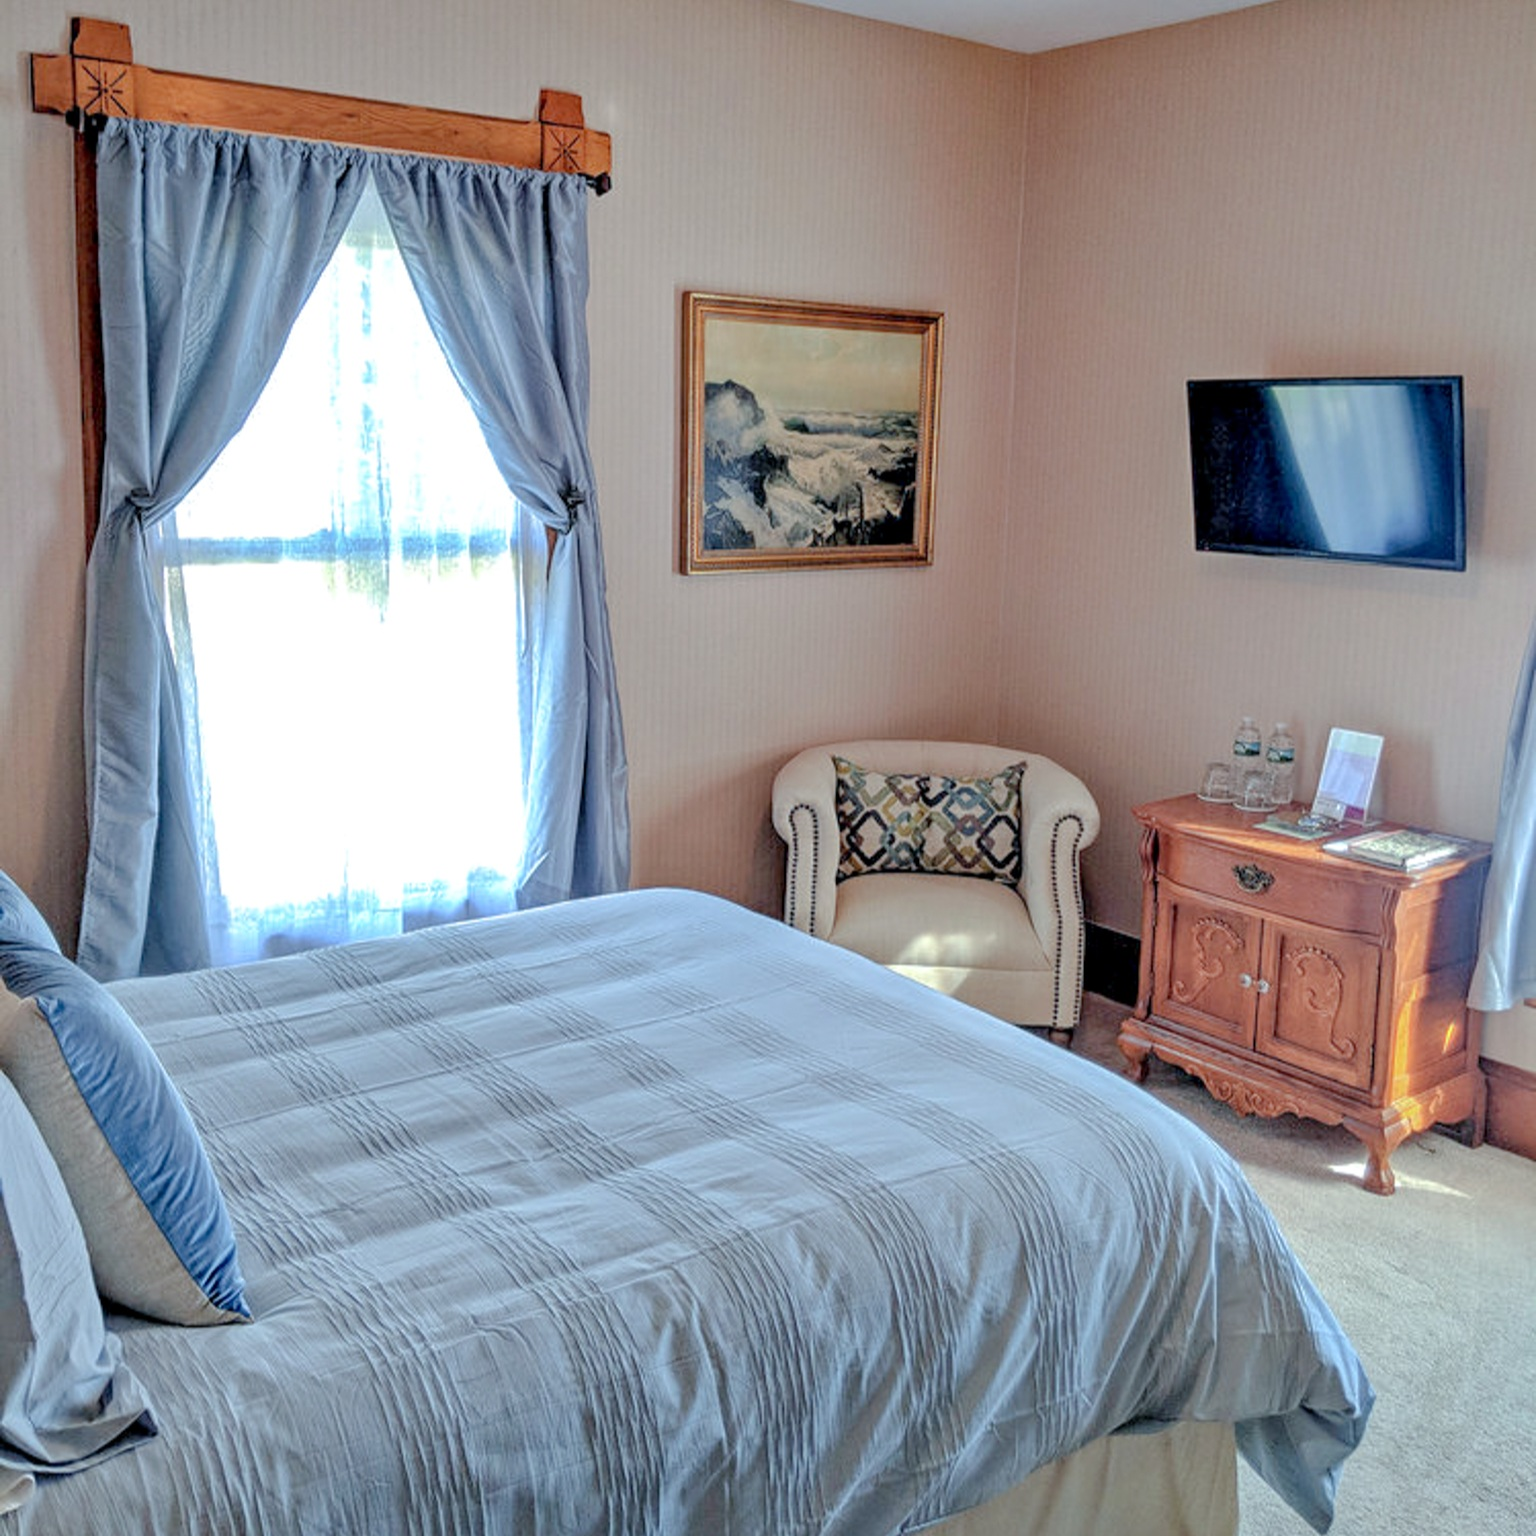 Seguin - Eastlake victorian era furnishings compliment the home's authentic architectural style. Located on the second floor.Room Features: Standard queen bedded room, en-suite bathroom with stall shower.